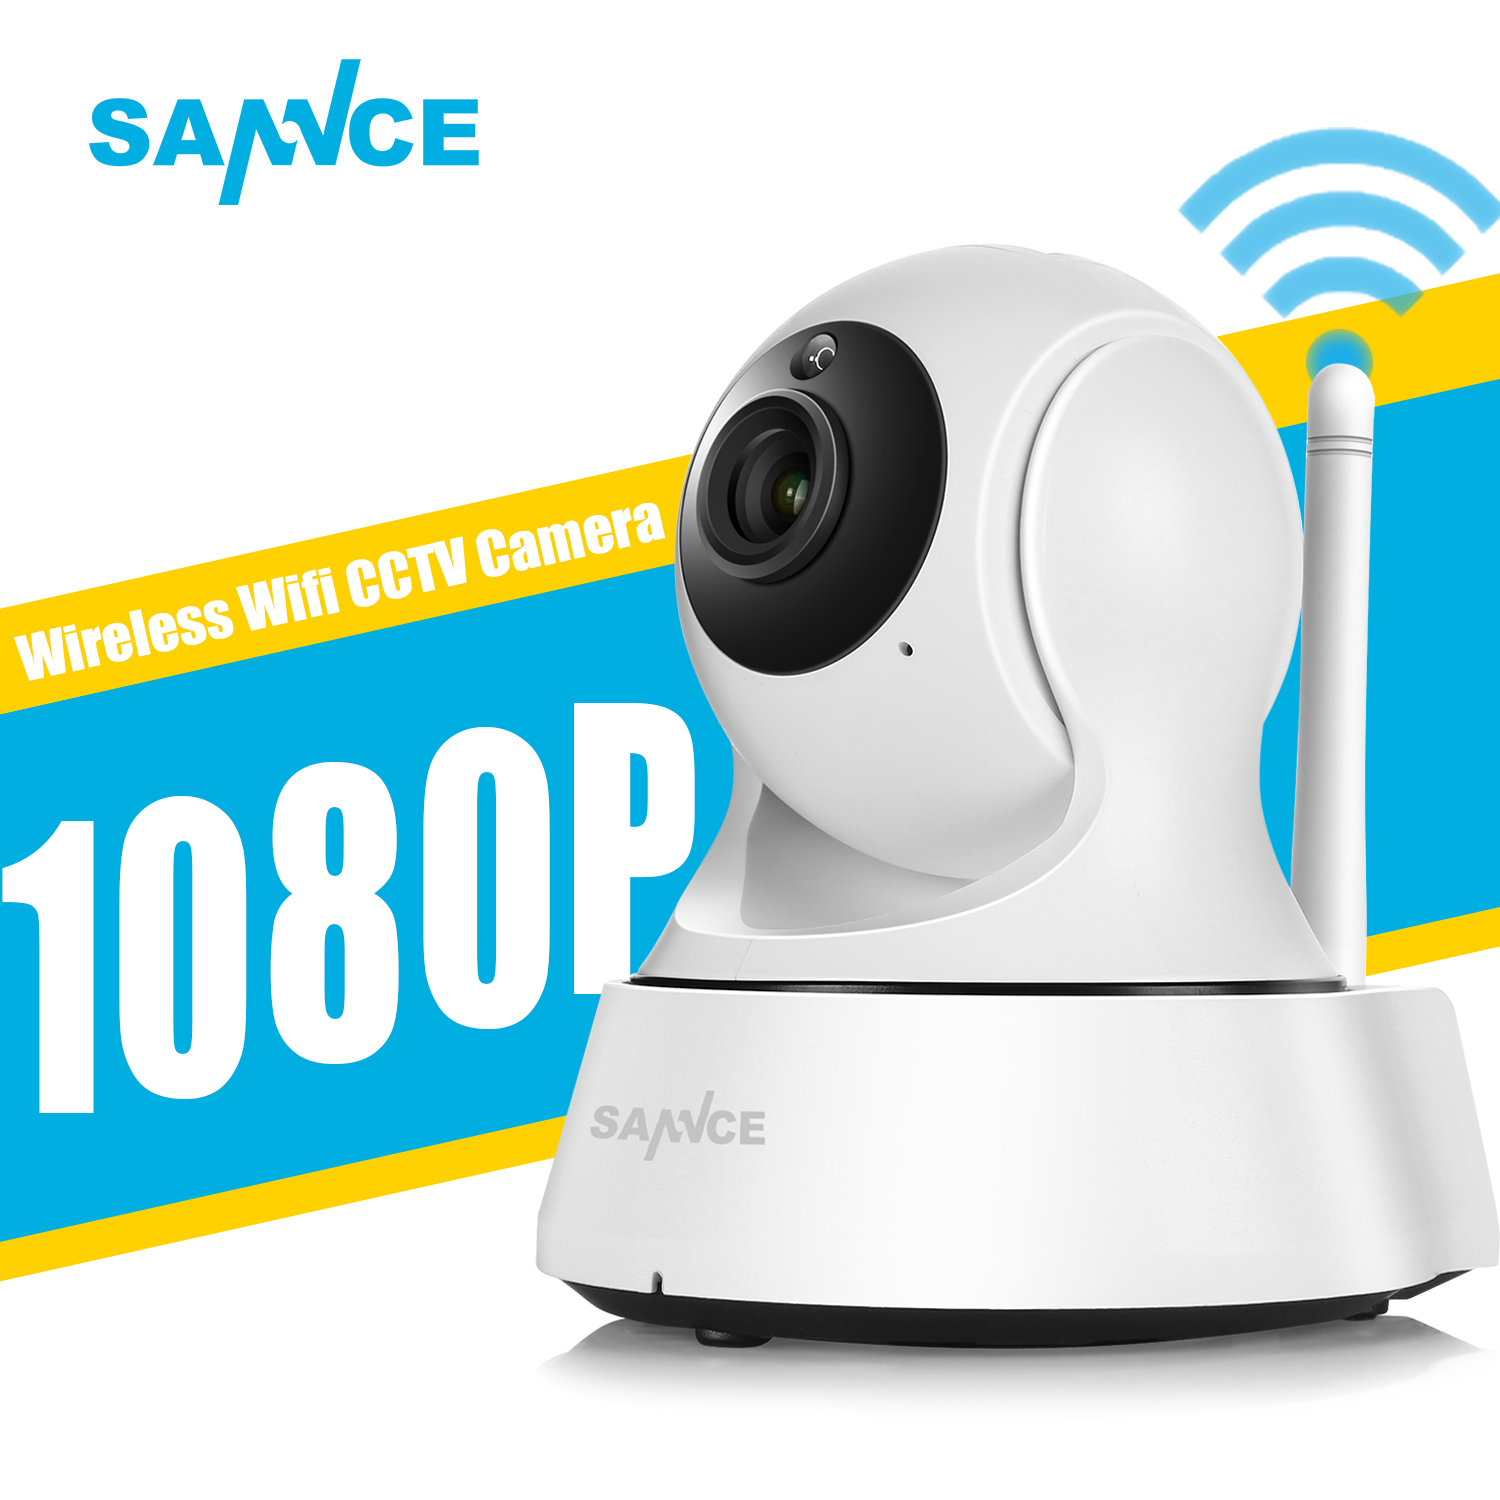 SANNCE 1080 P Full HD Mini Wireless Wi-fi Cámara Sucurity Cámara CCTV Wifi Red de Vigilancia IP IRCUT Inteligente Visión Nocturna Onvif